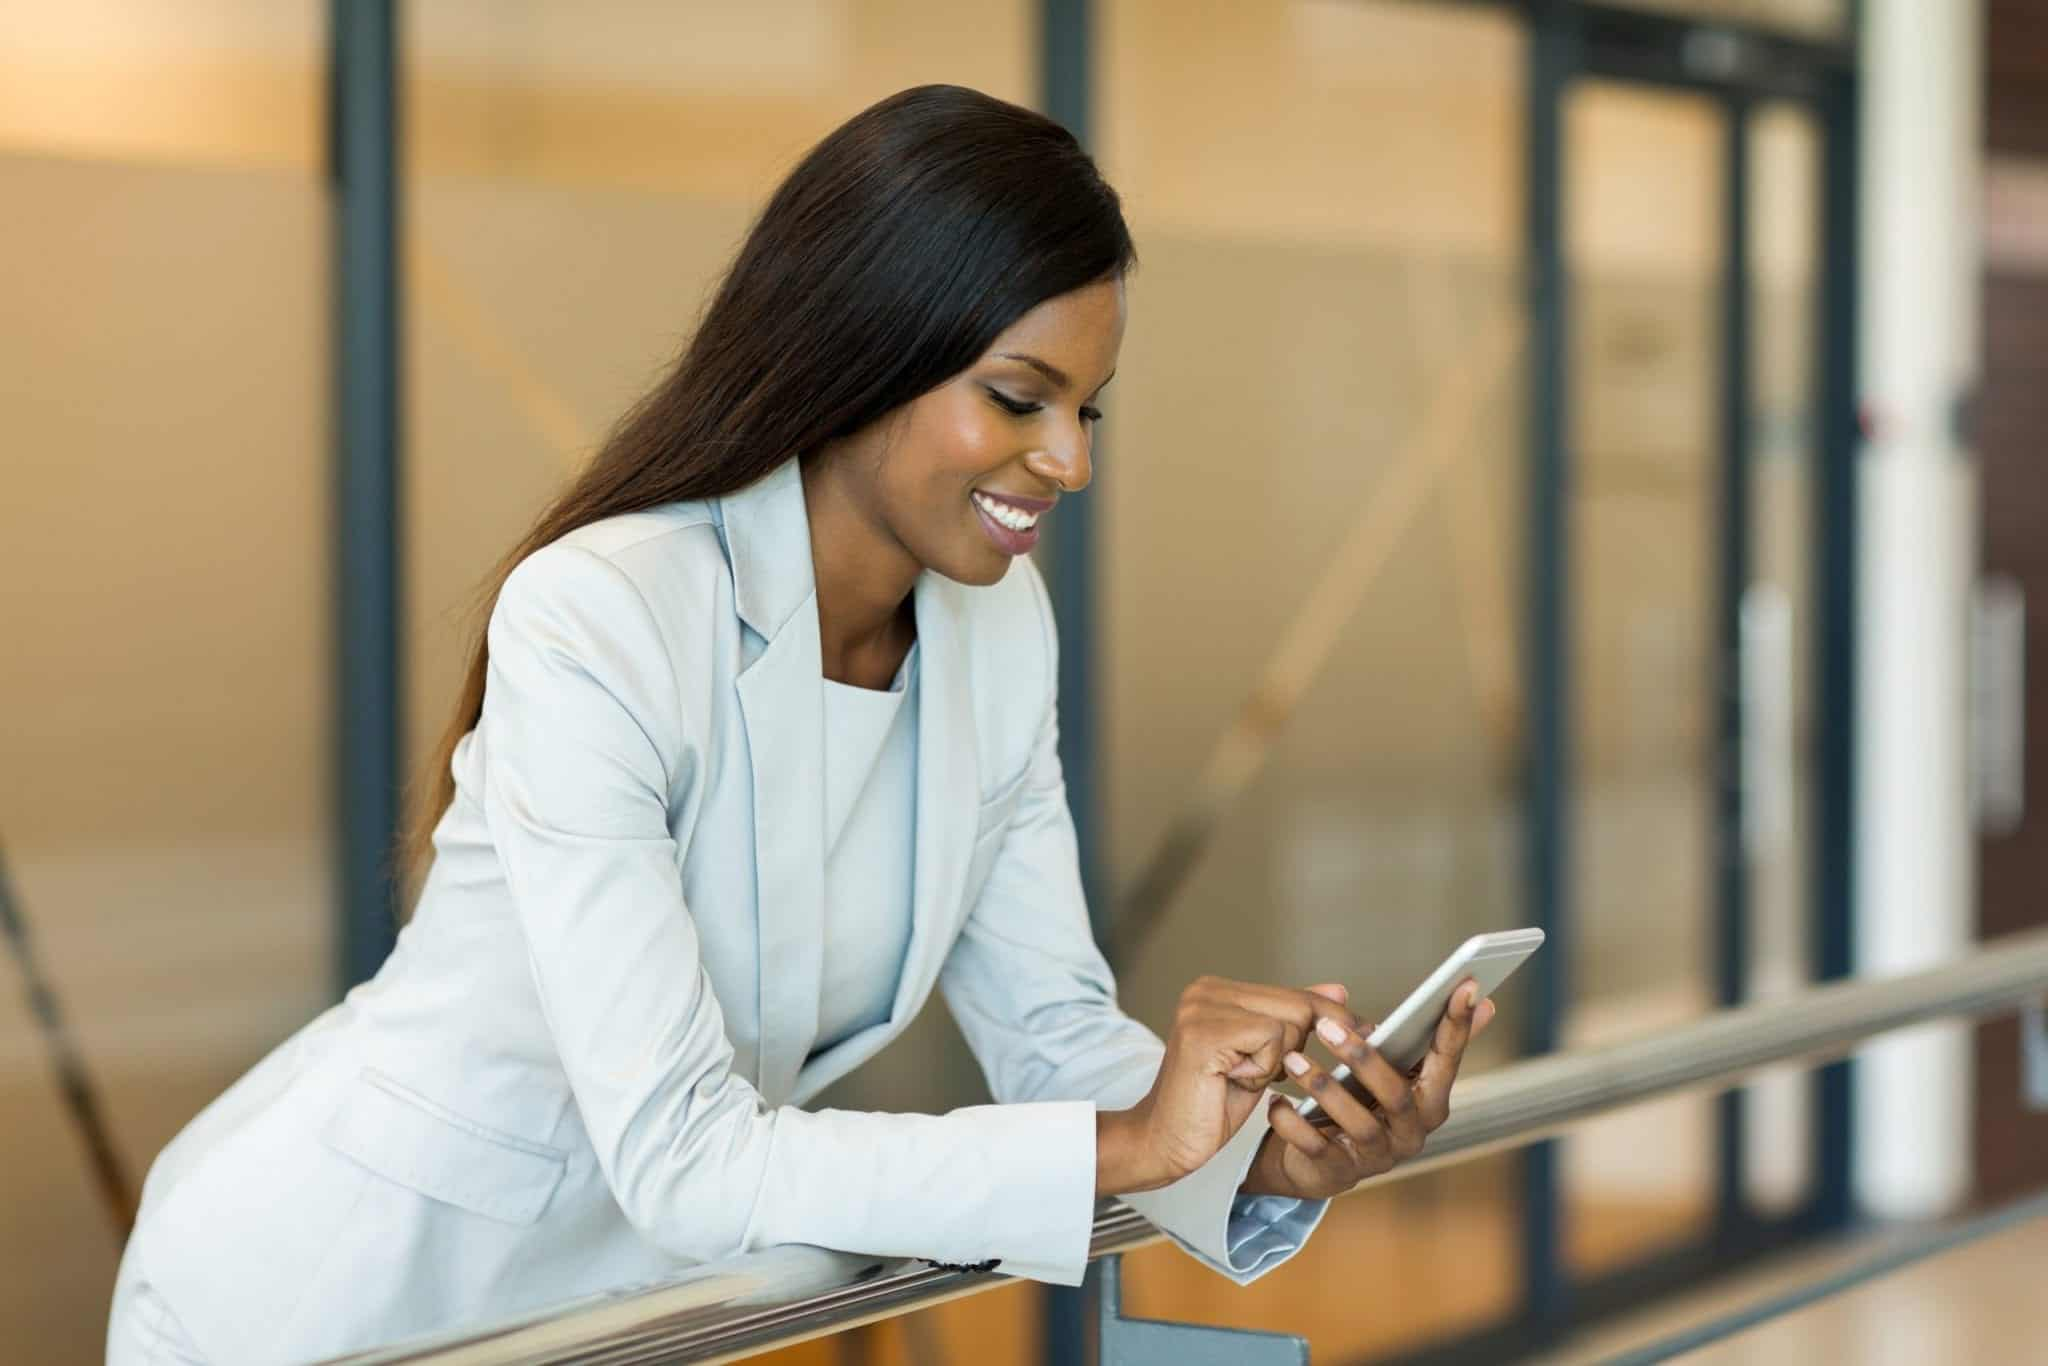 professional young career woman using smart phone